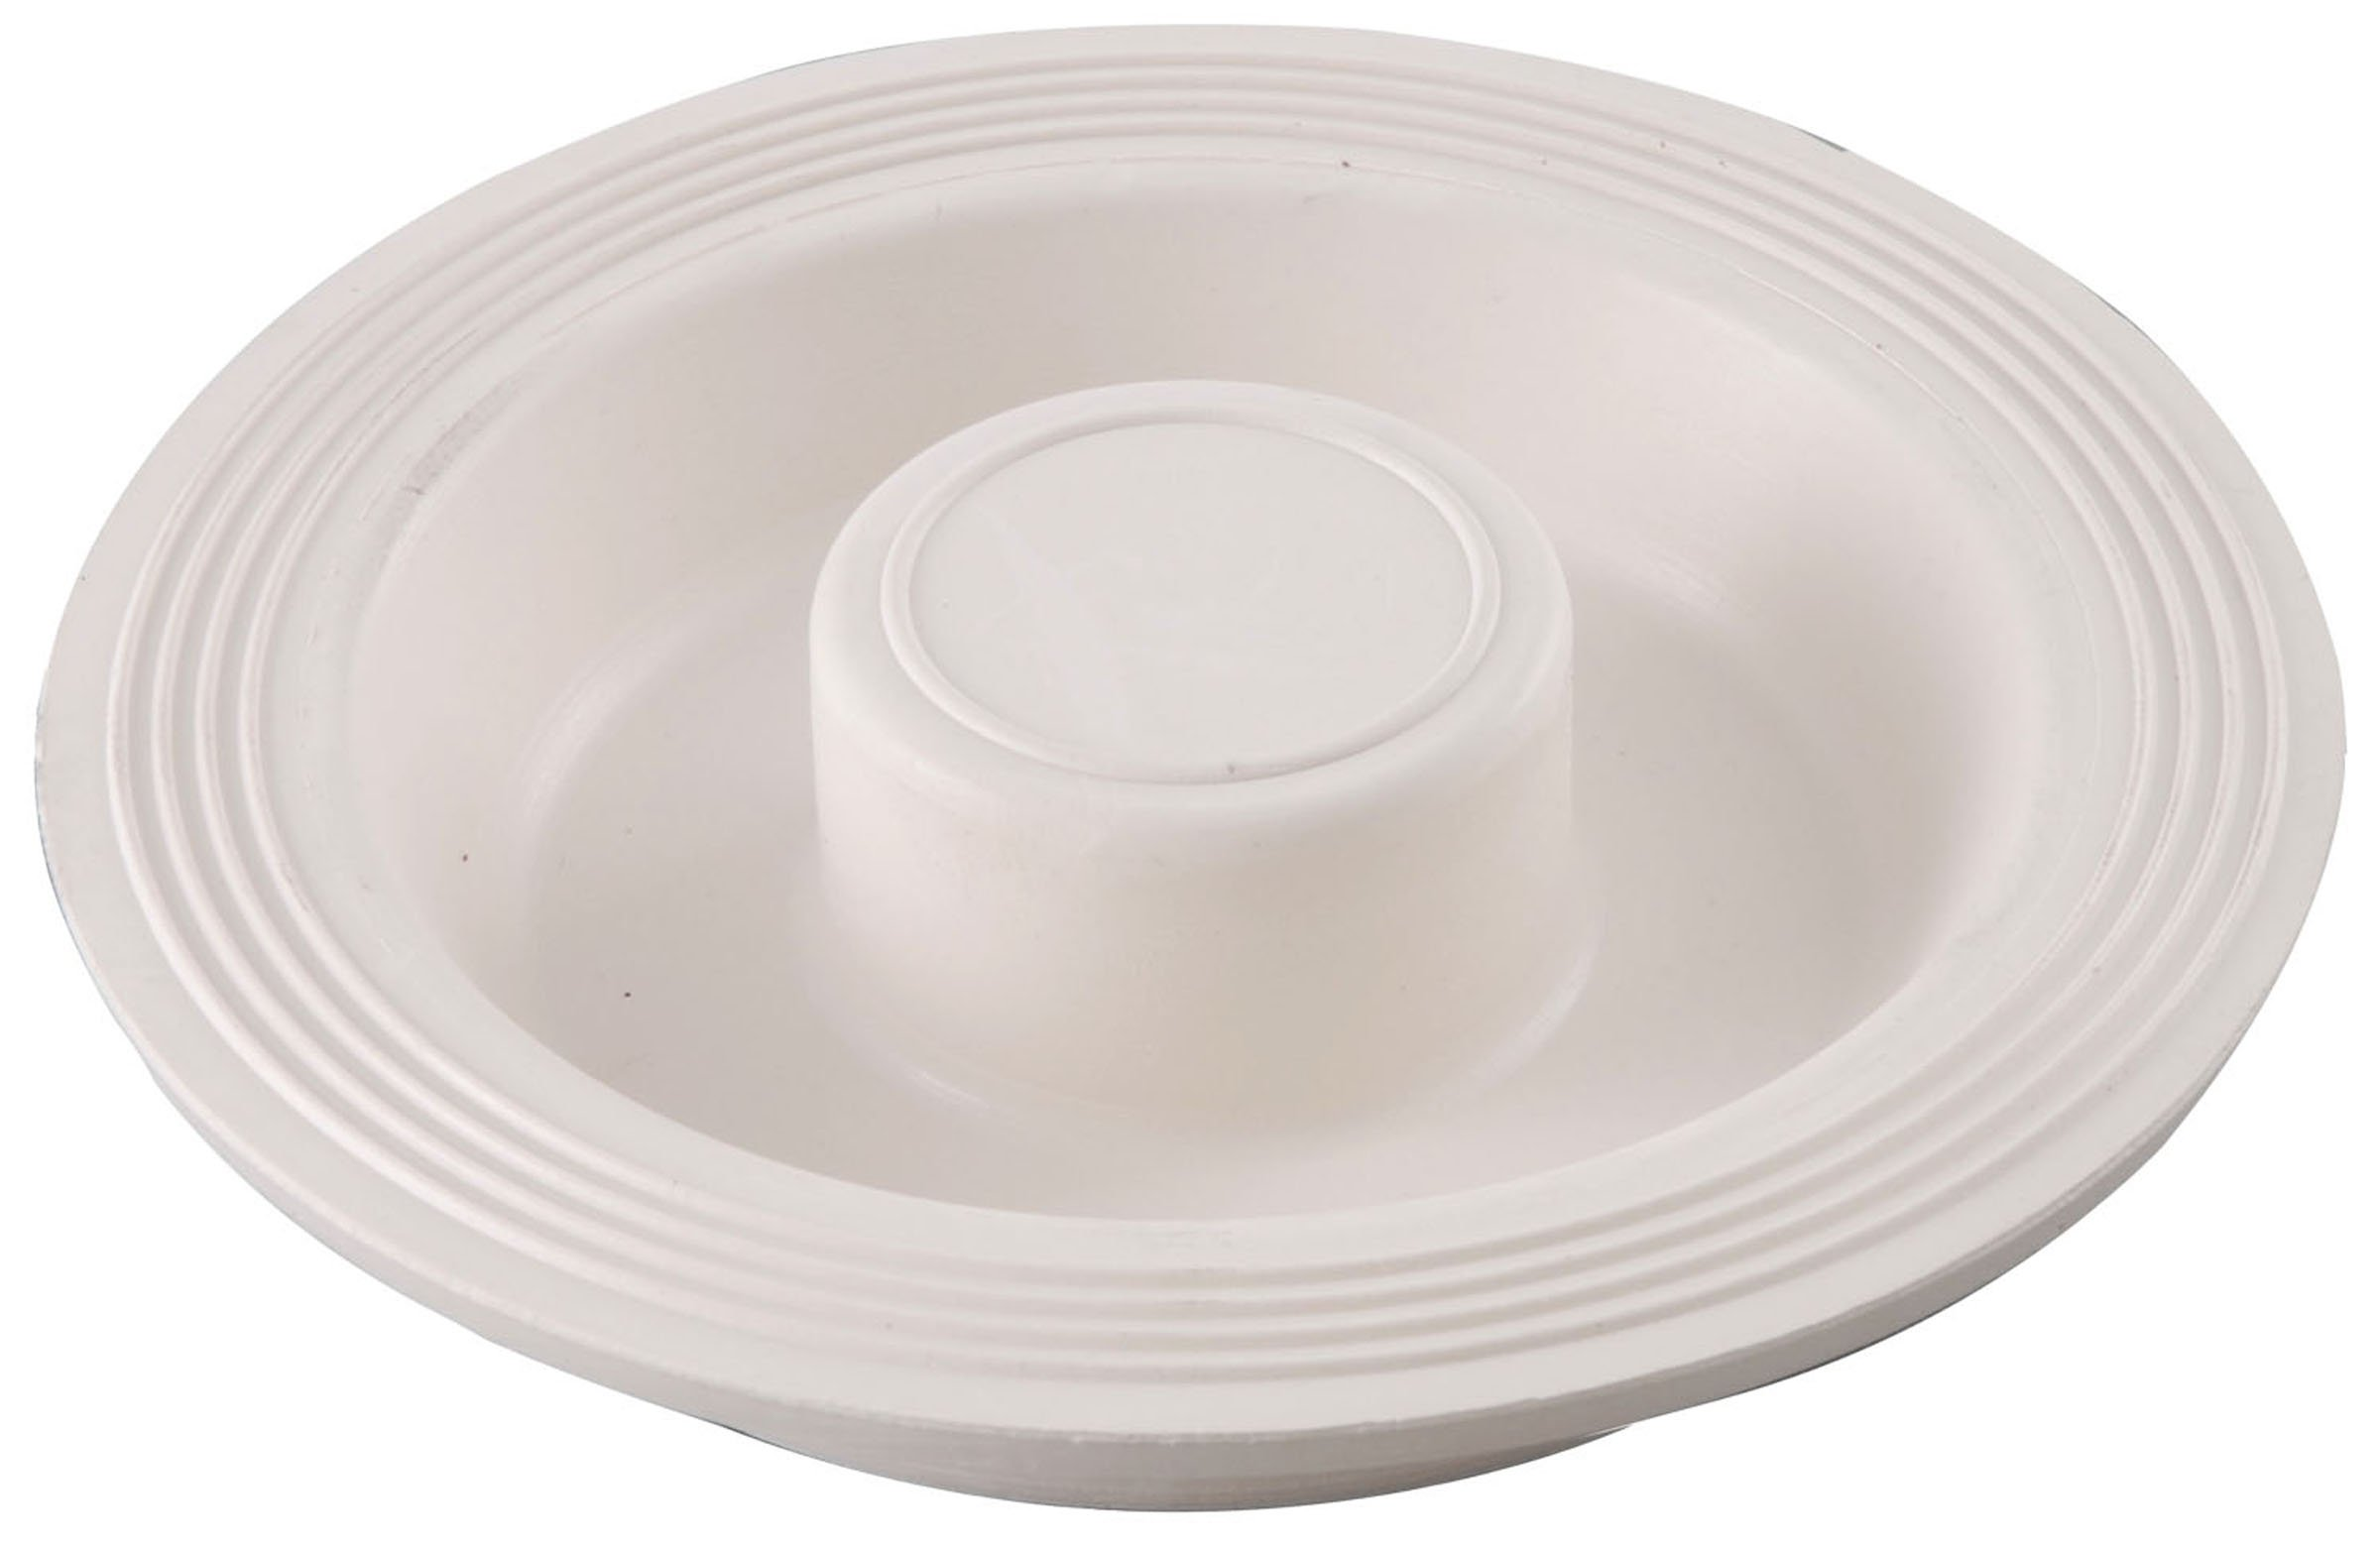 LDR Industries 501 5100 Garbage Disposal Stopper, White by LDR Industries